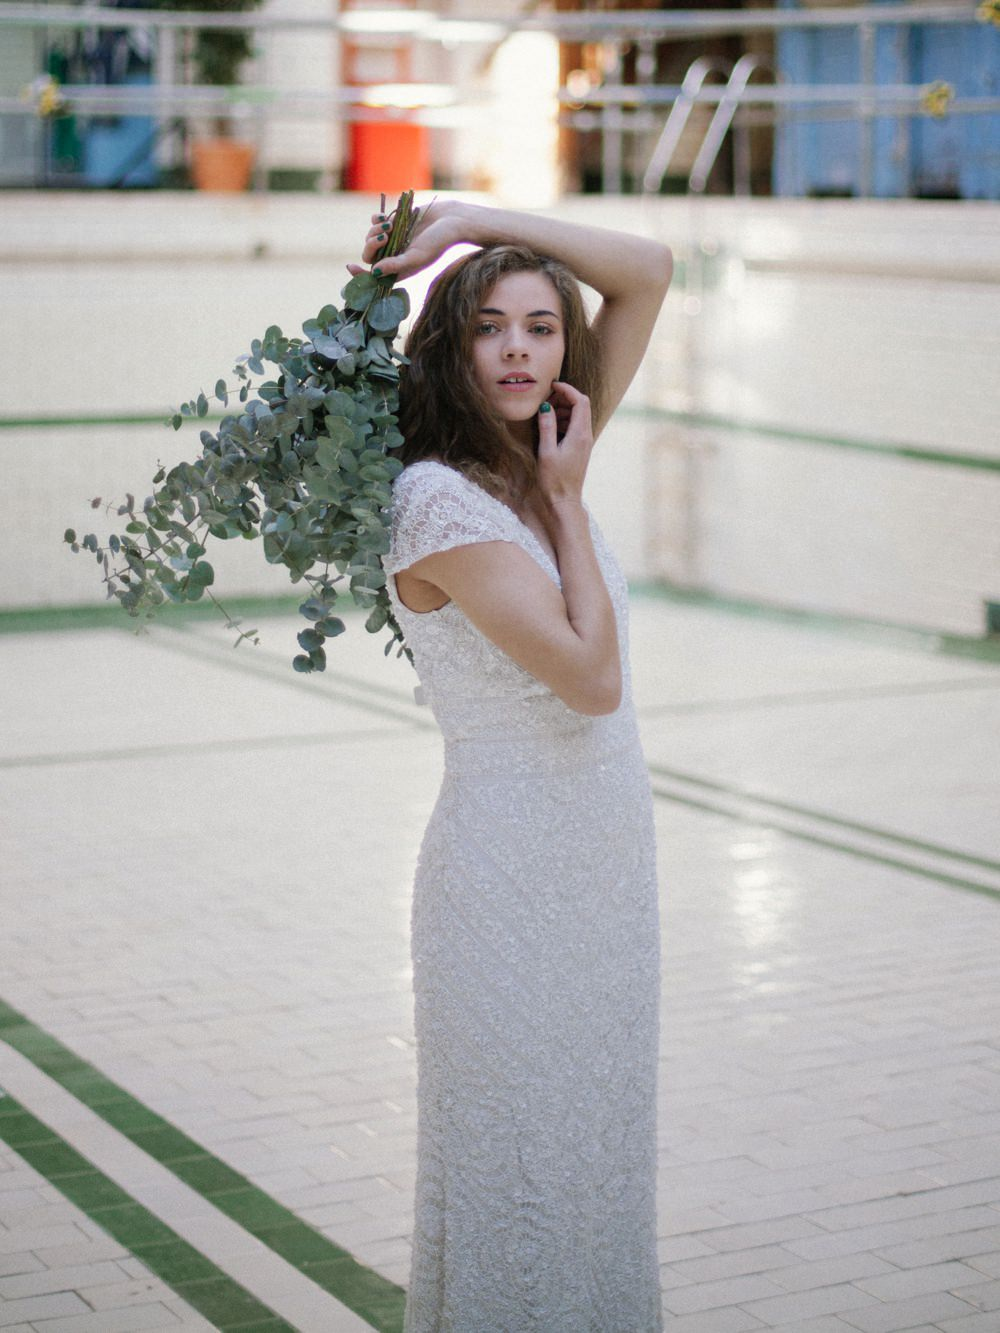 An-Ethereal-Green-and-Foliage-Inspired-Bridal-Edit-at-Victoria-Baths-by-Leah-Henson-Photography-Adored-Bride_0004.jpg